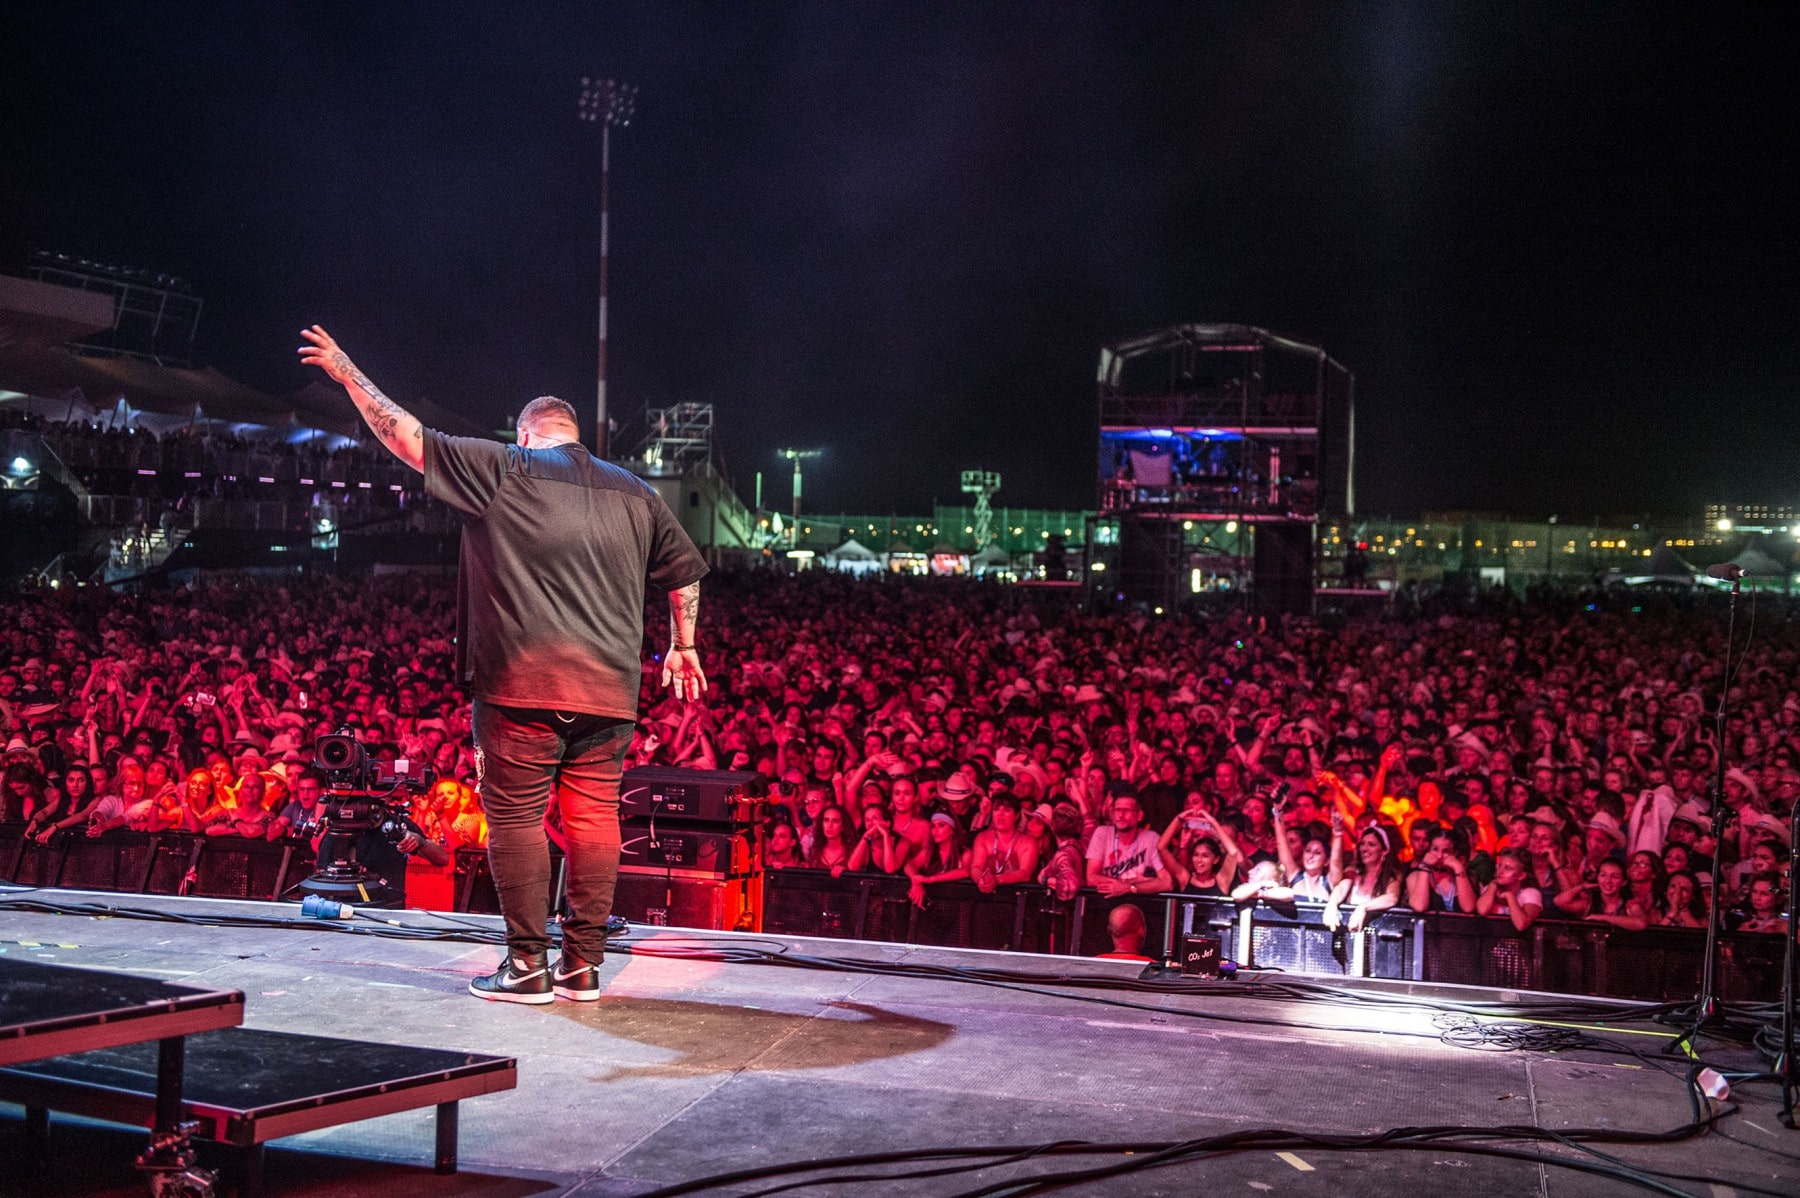 rag-n-bone-man-at-mtv-presents-gibraltar-calling-2018-day-2-by-ollie-millington-15_44833870942_o